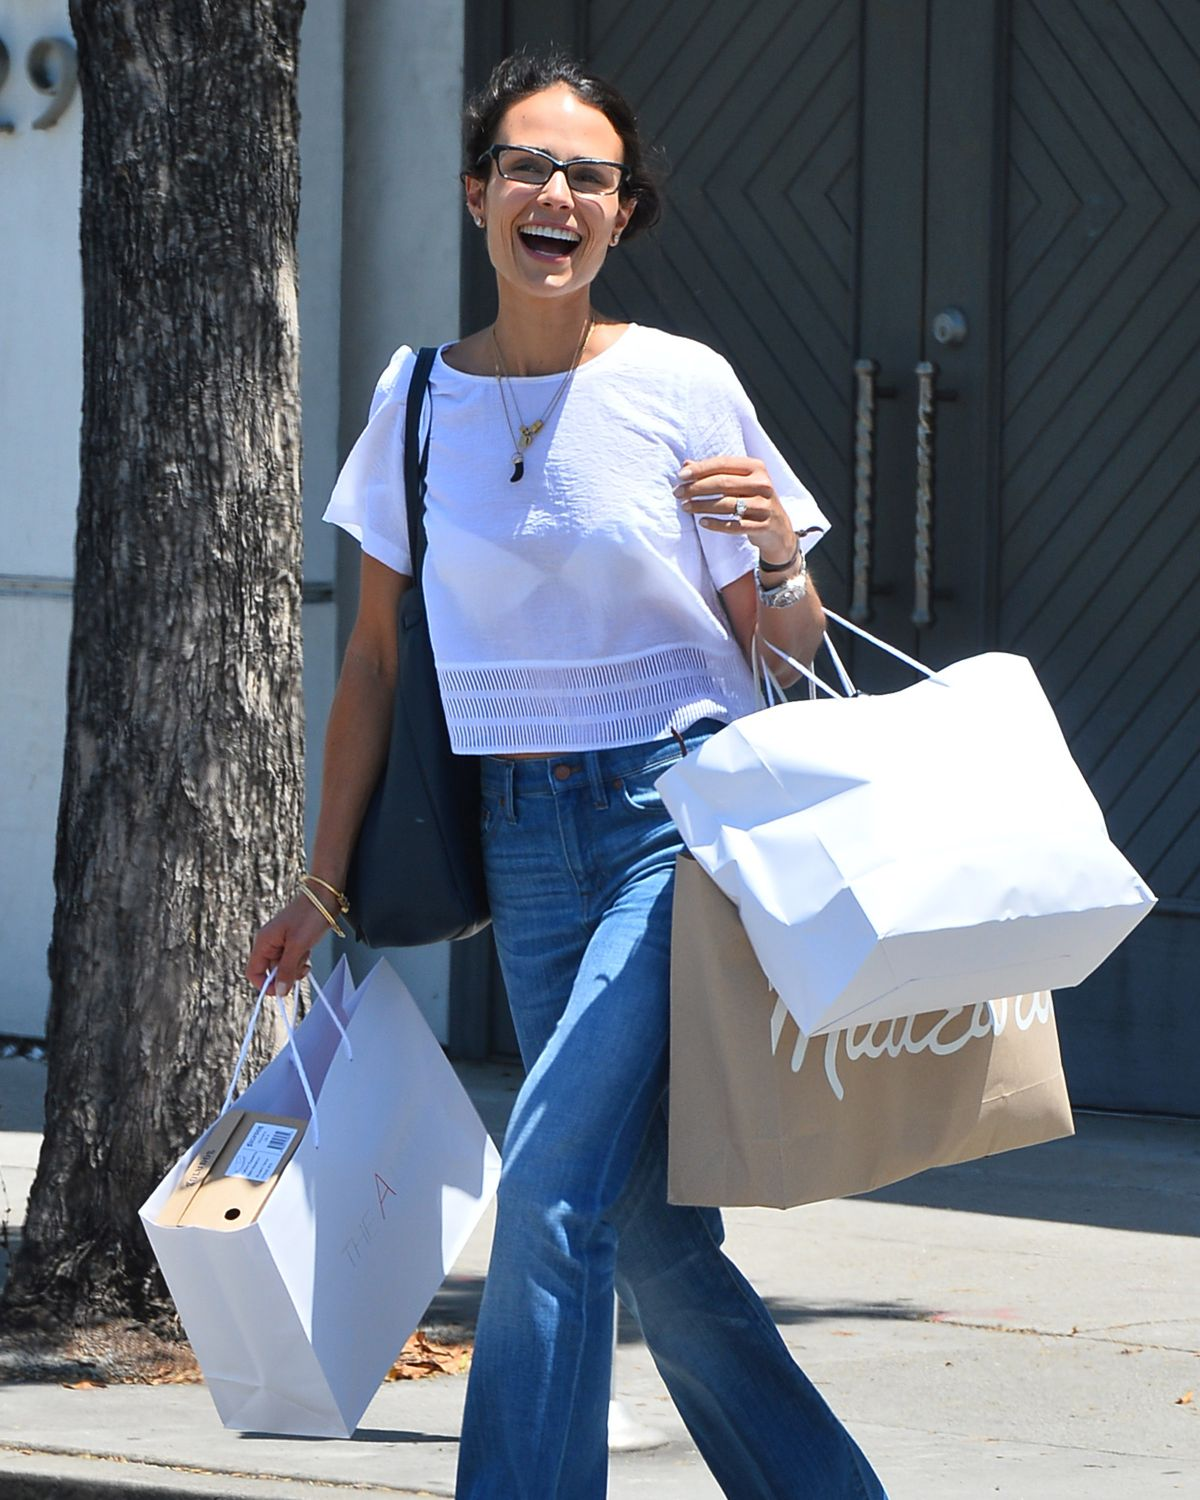 JORDANA BREWSTER in Jeans Out Shopping in Los Angeles 07/30/2015 ...